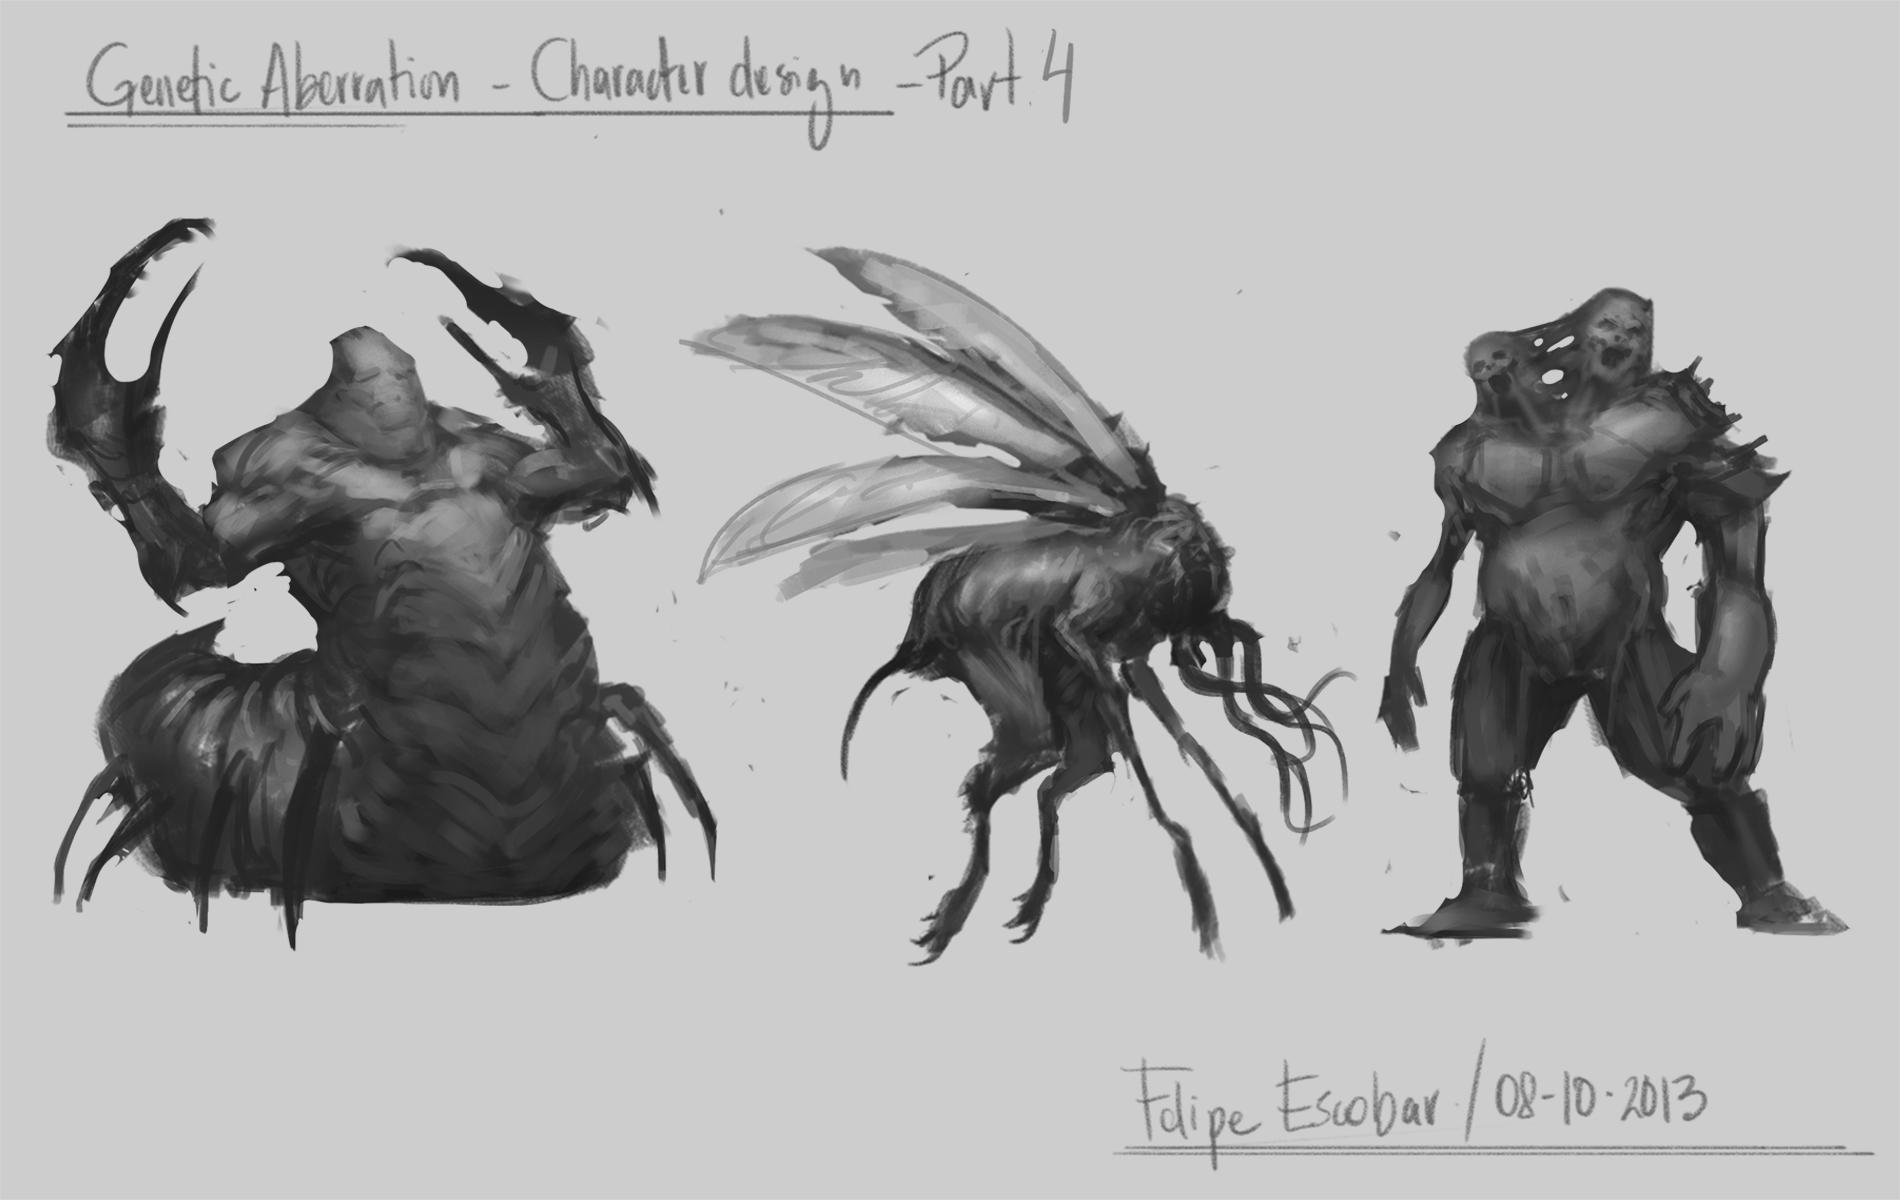 Genetic Aberration - Character design  - image 4 - student project